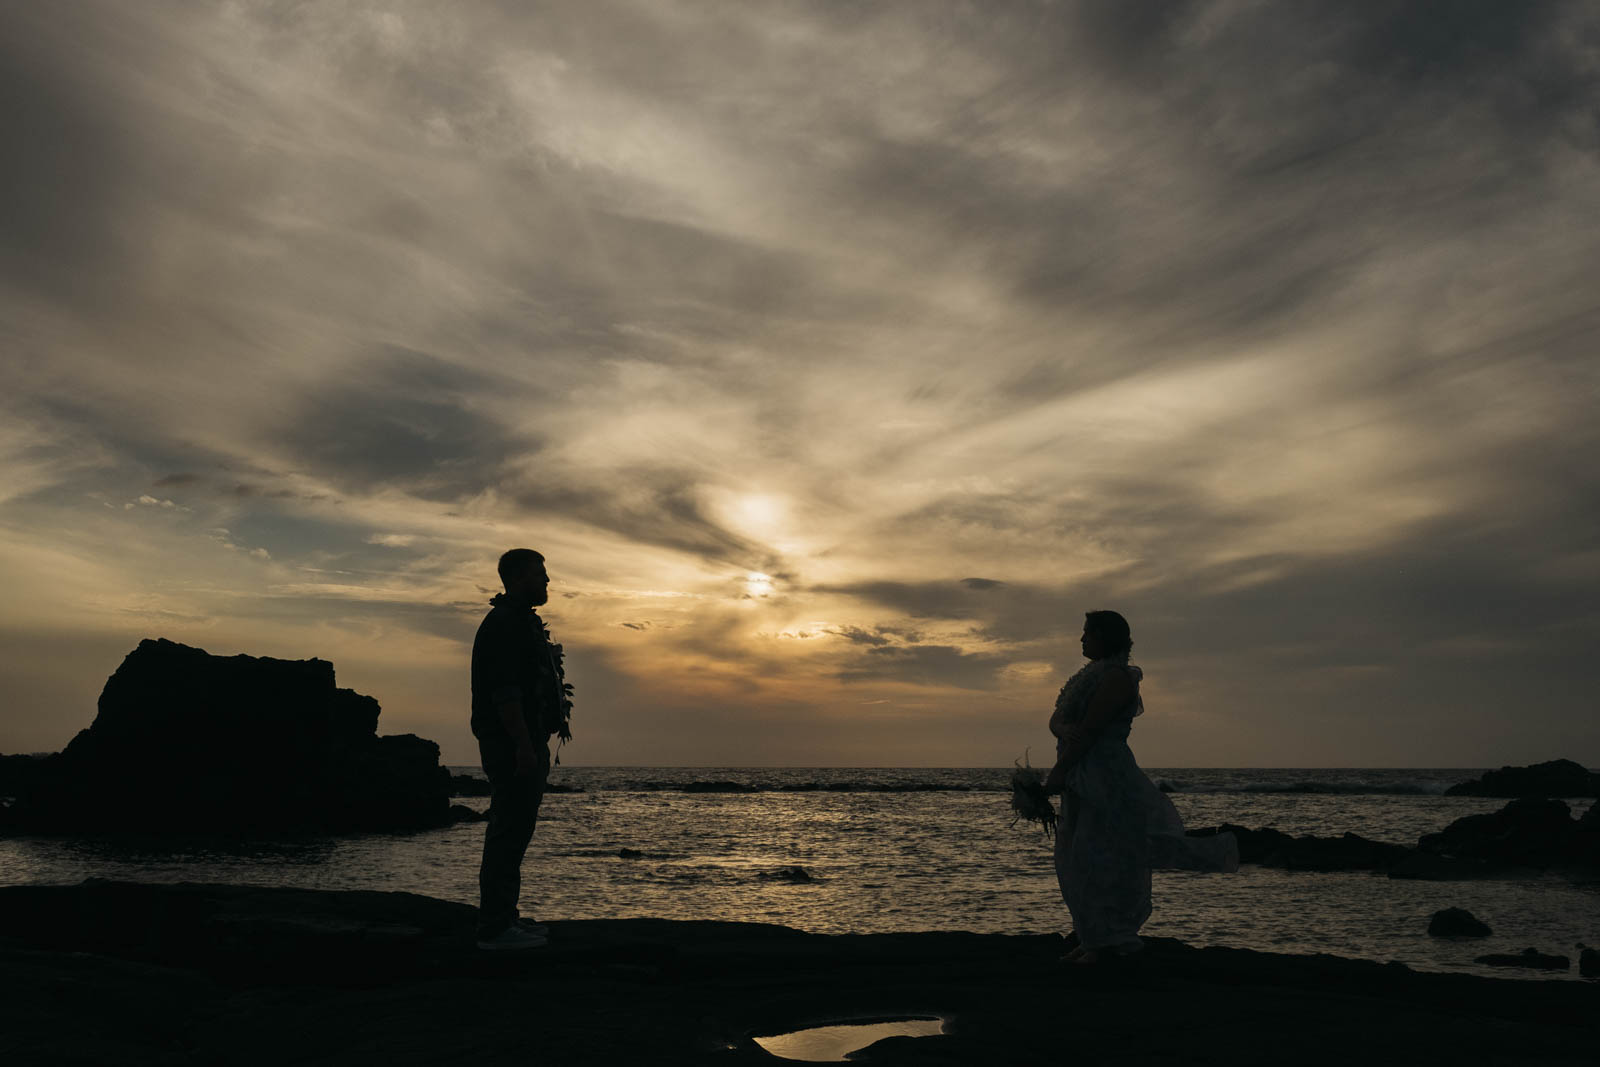 Bride and groom sunset silhouette portrait.